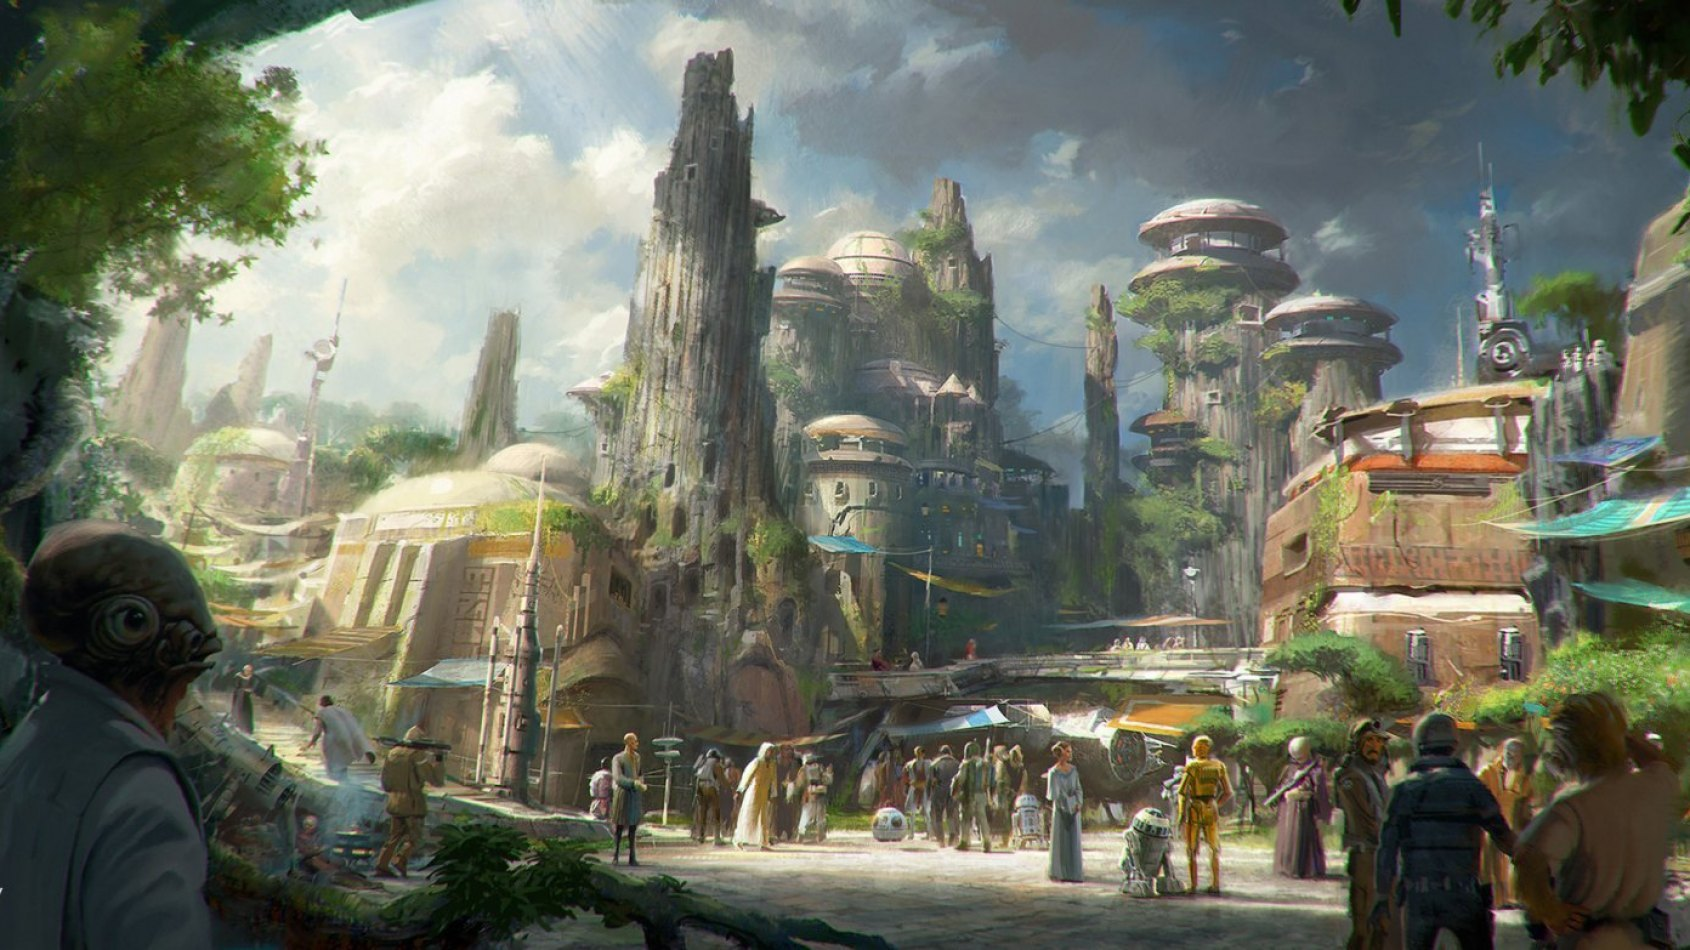 Le chantier du Star Wars Land a officiellement commenc� !